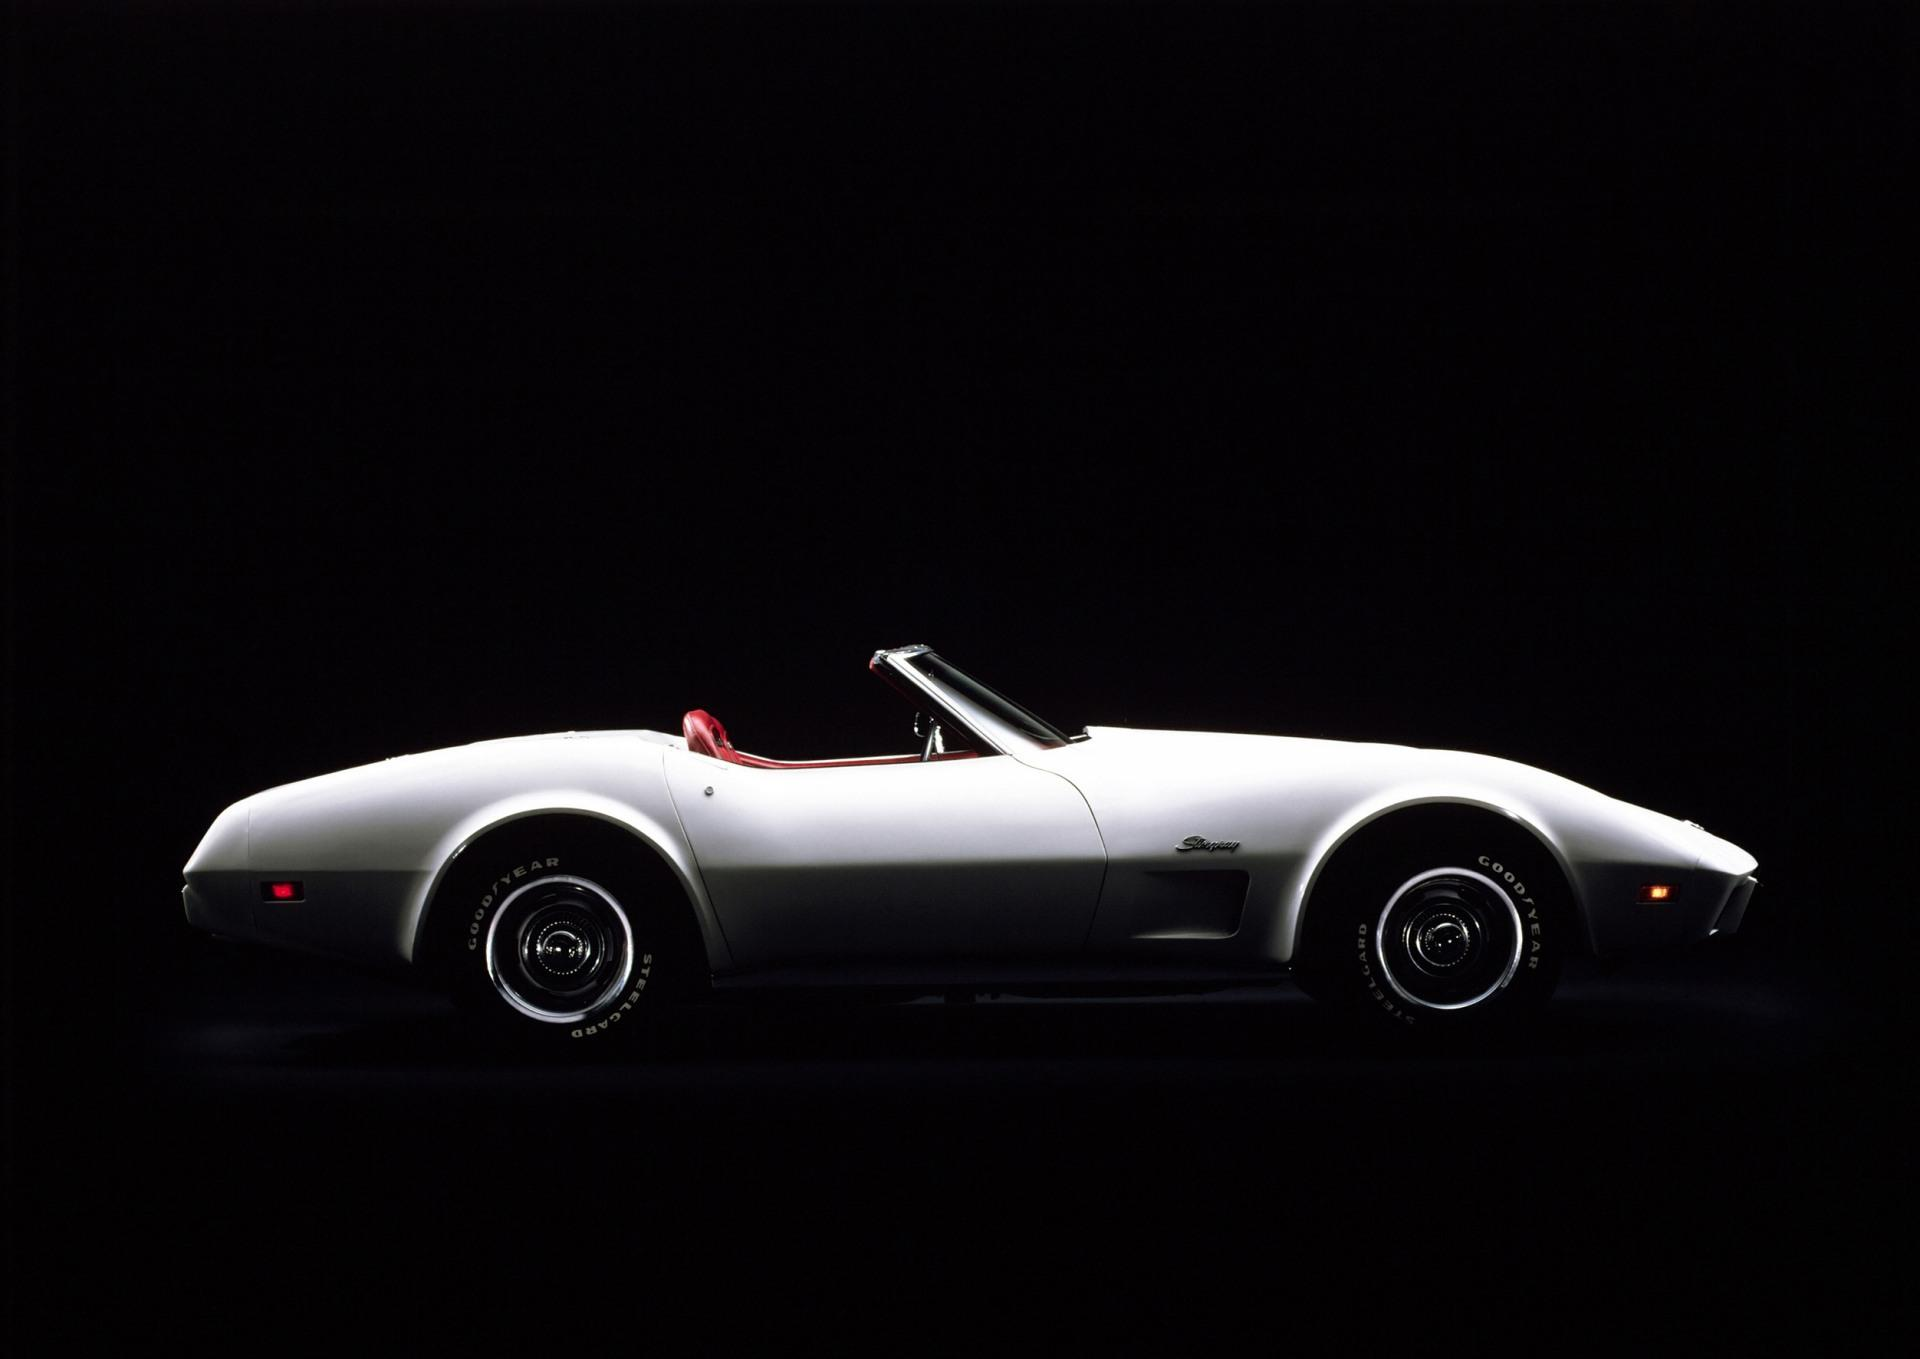 Car Slideshow Wallpaper 1 1975 Corvette Hd Wallpapers Background Images